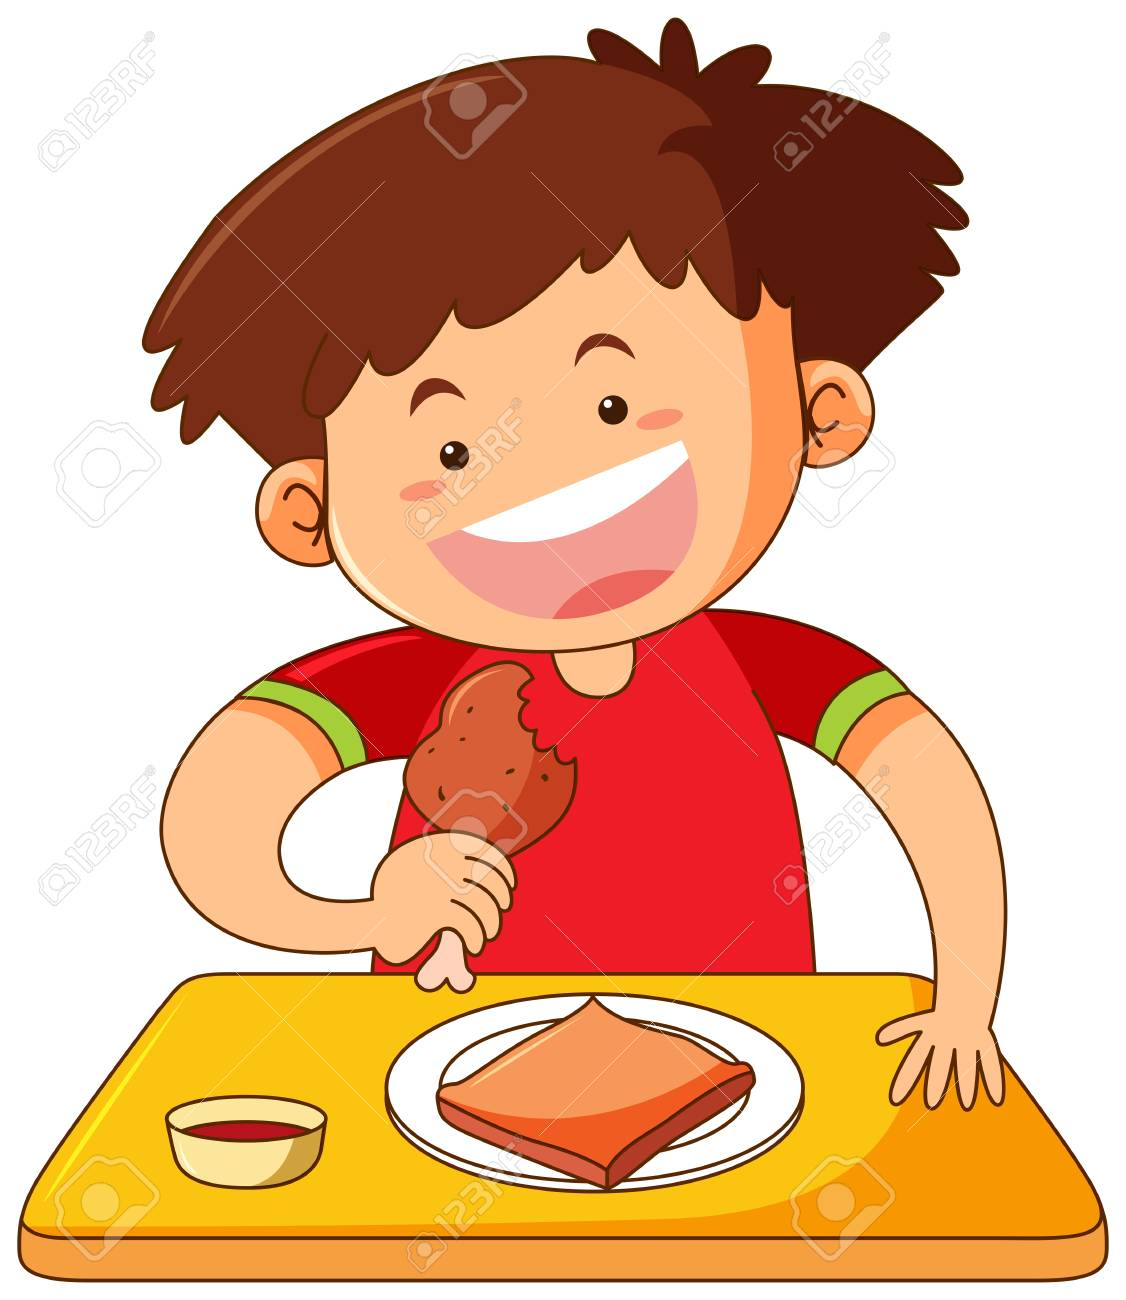 Boy eating chicken on table illustration.